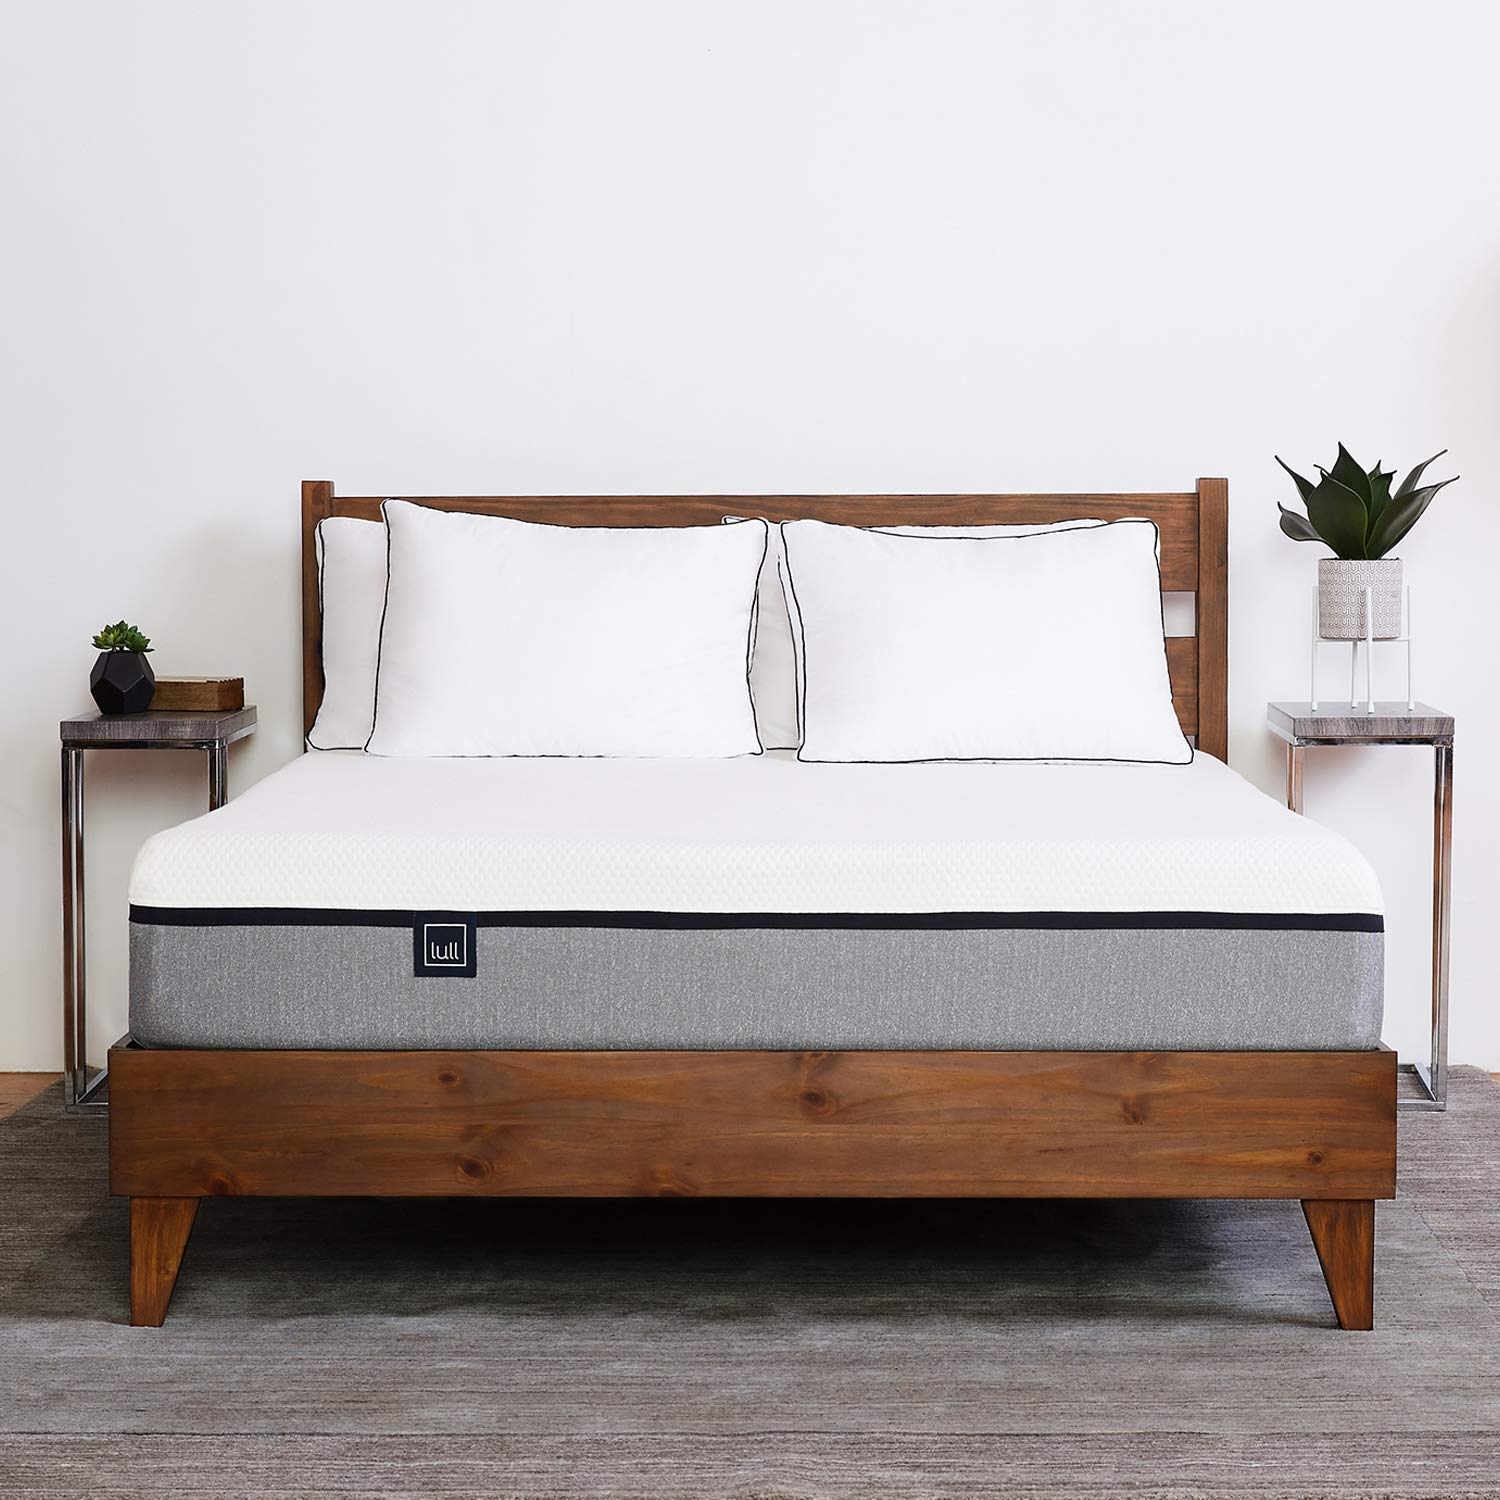 SLEEPLACE 14 Inch ST-3000 Ultra 3 Inch Wood Slat Bed Frame, Twin